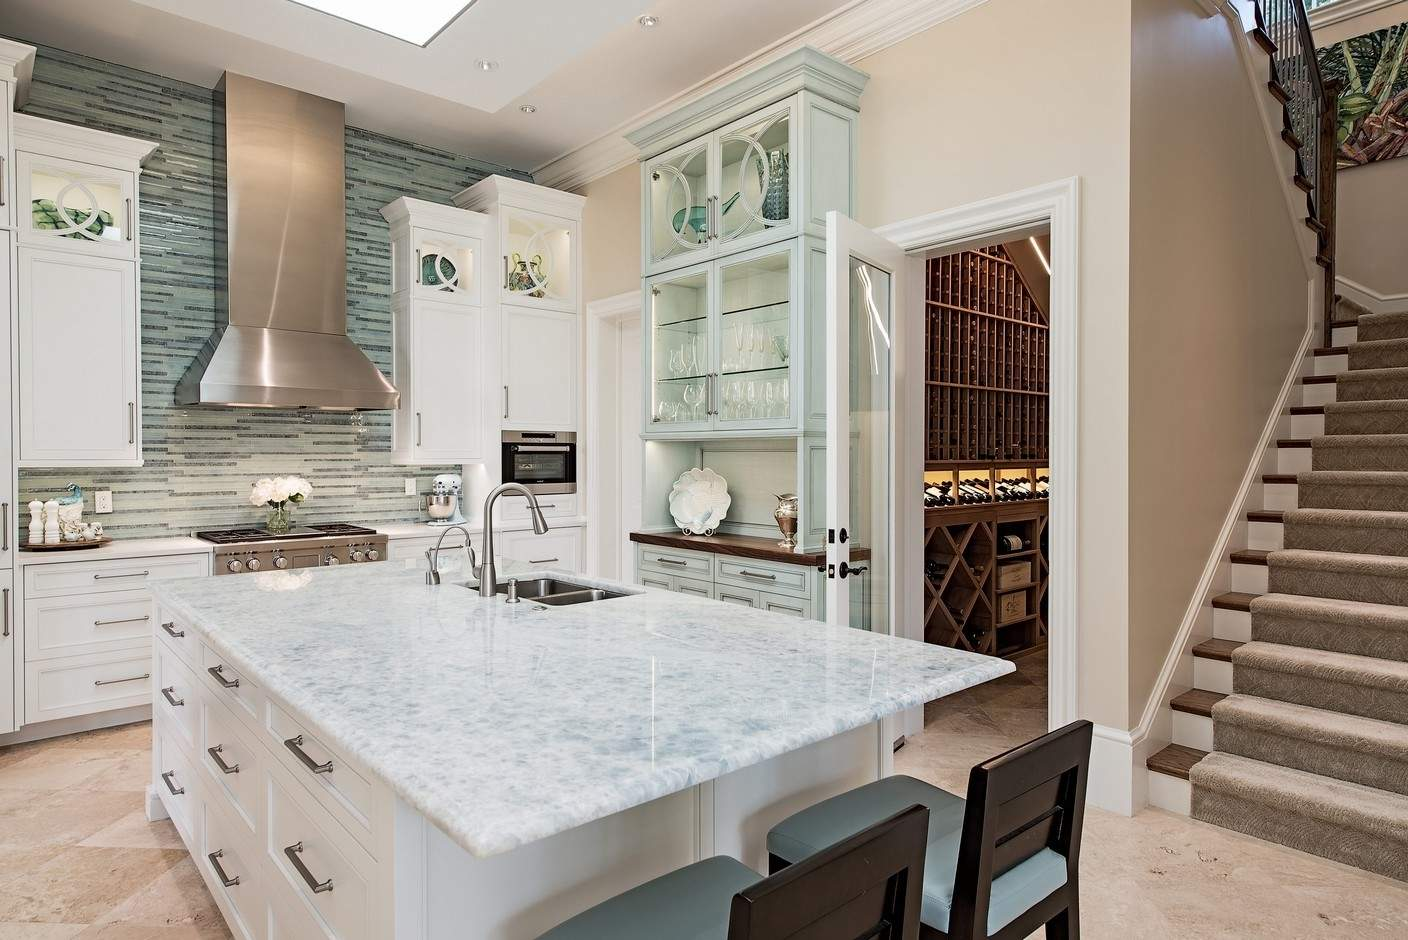 Remodeling galleries bcb custom homes naples florida for Bath remodel naples fl